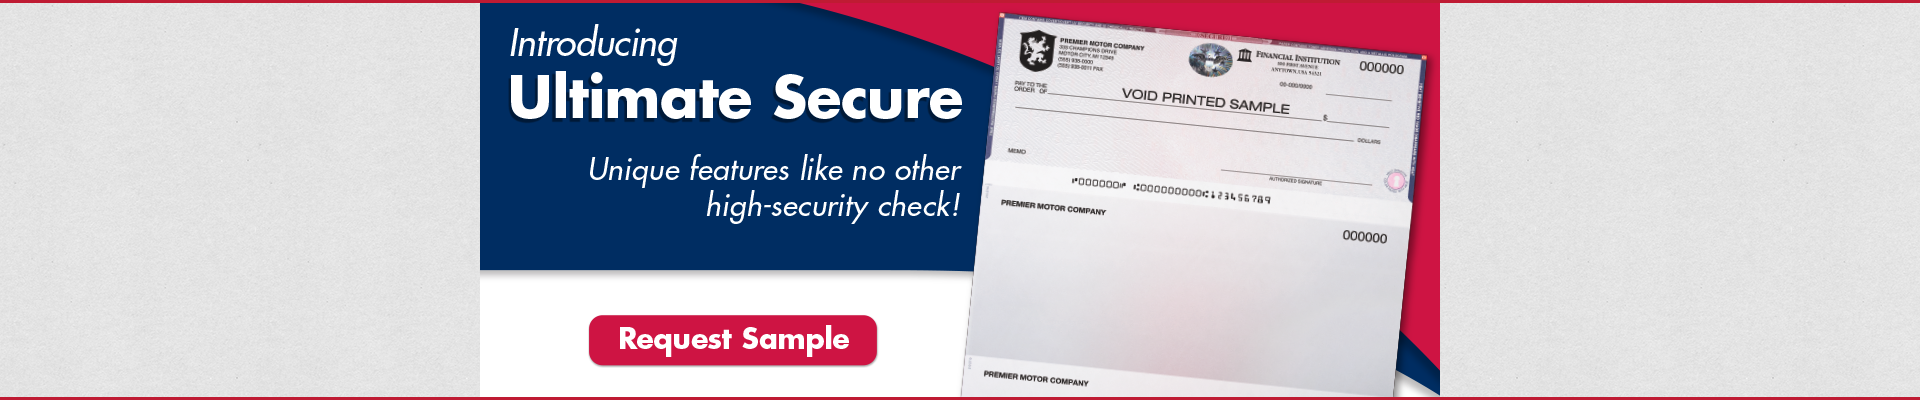 Introducing Ultimate Secure Checks